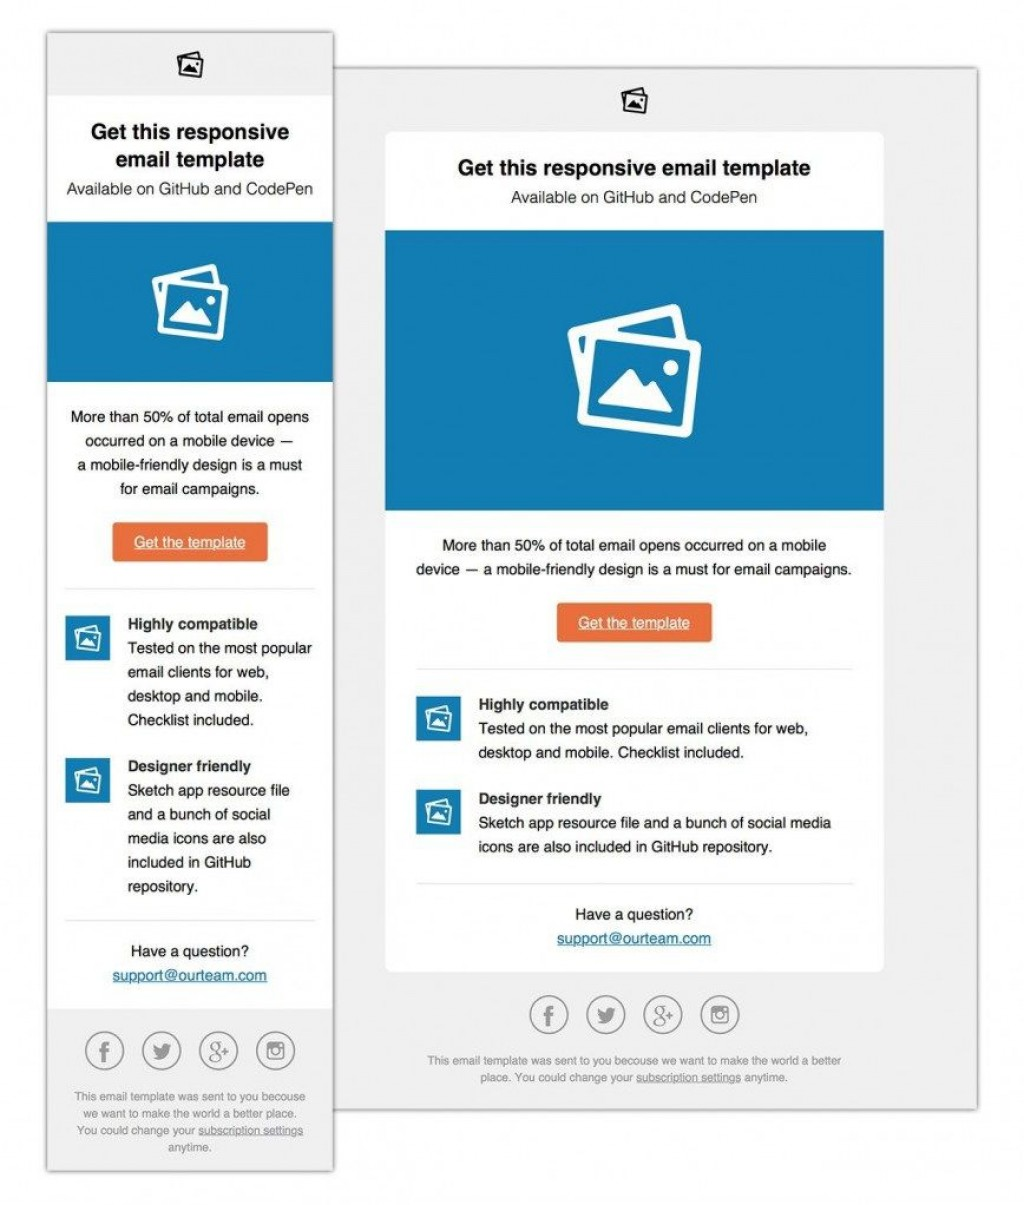 002 Shocking Free Responsive Html Email Template Download Highest Clarity  Simple App-responsive-notification-email-html-templateLarge